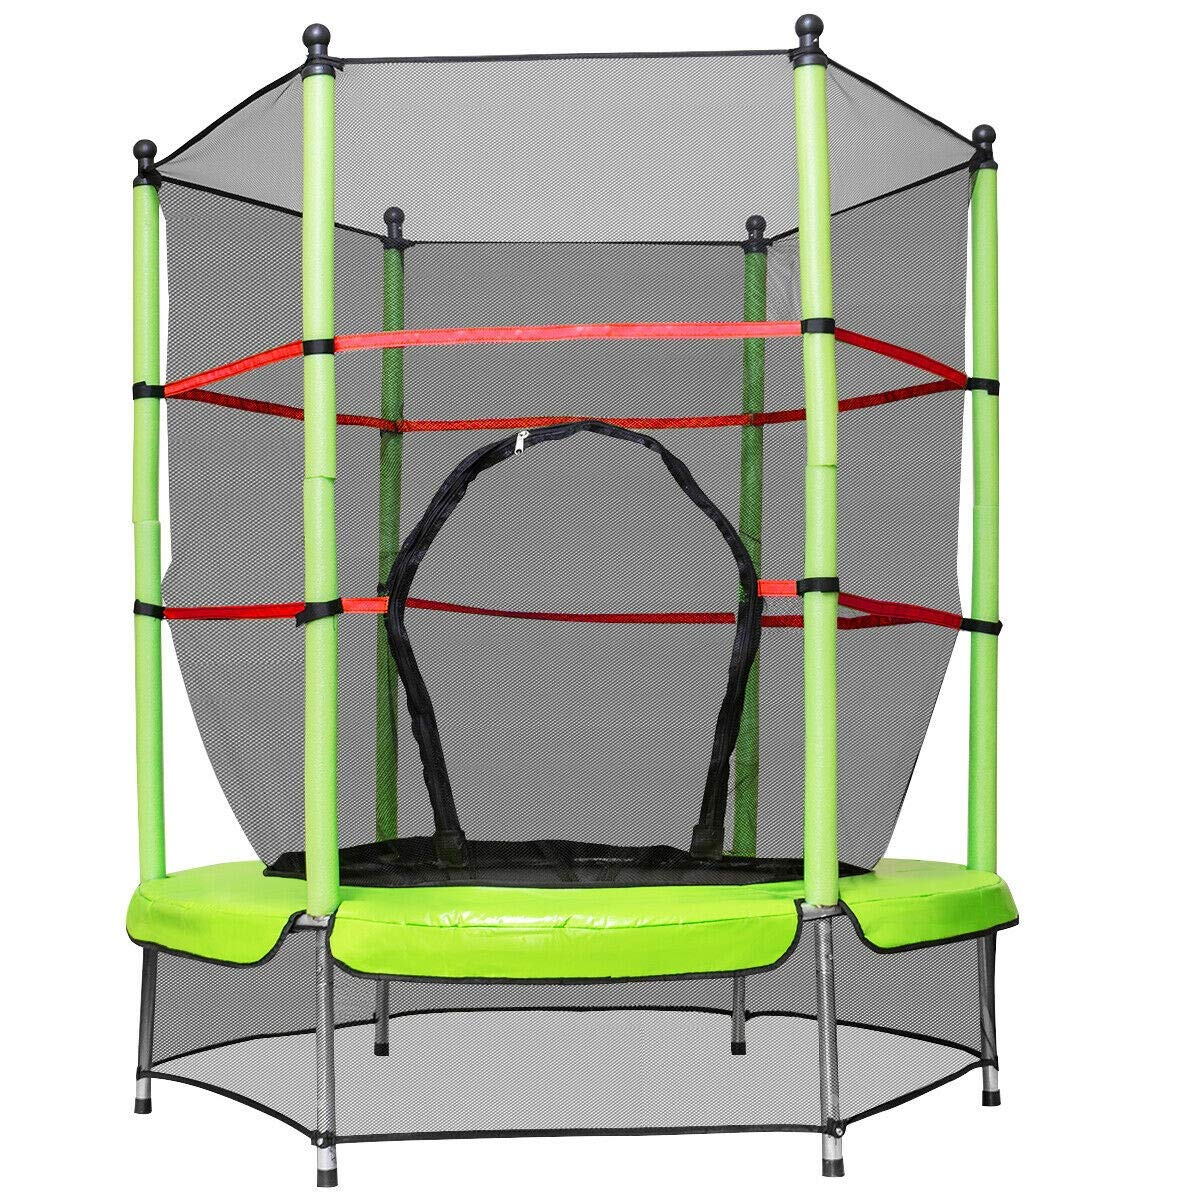 Bounce Their Ways to Fun 55'' Round Exercise Jumping Trampoline with Safety Pad 9rit_Shop by Bounce Their Ways to Fun 55'' Round Exercise Jumping Trampoline with Safety Pad